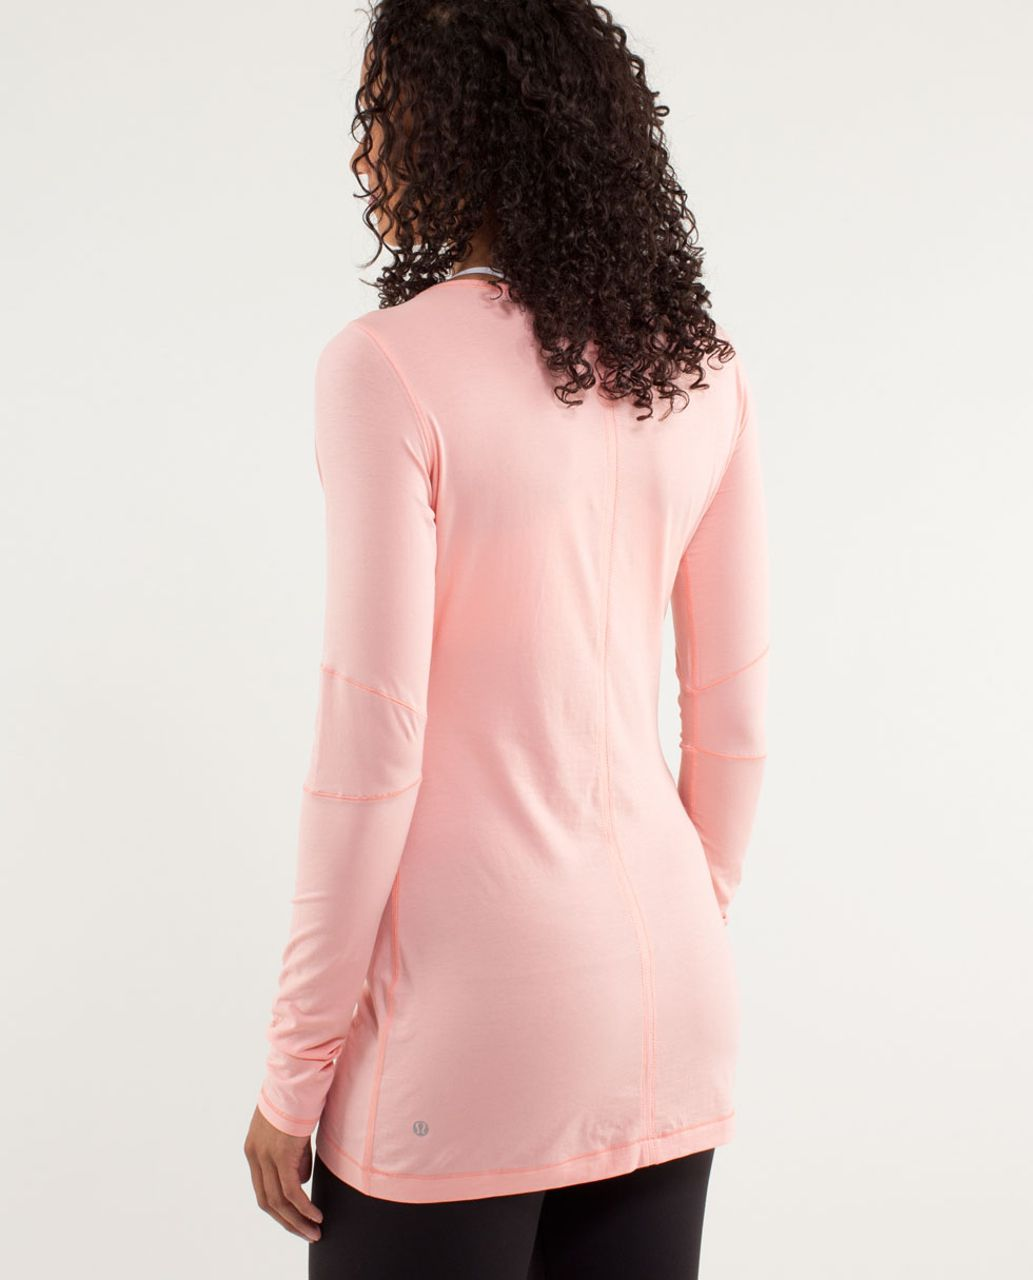 Lululemon Devotion Long Sleeve Tee - Bleached Coral